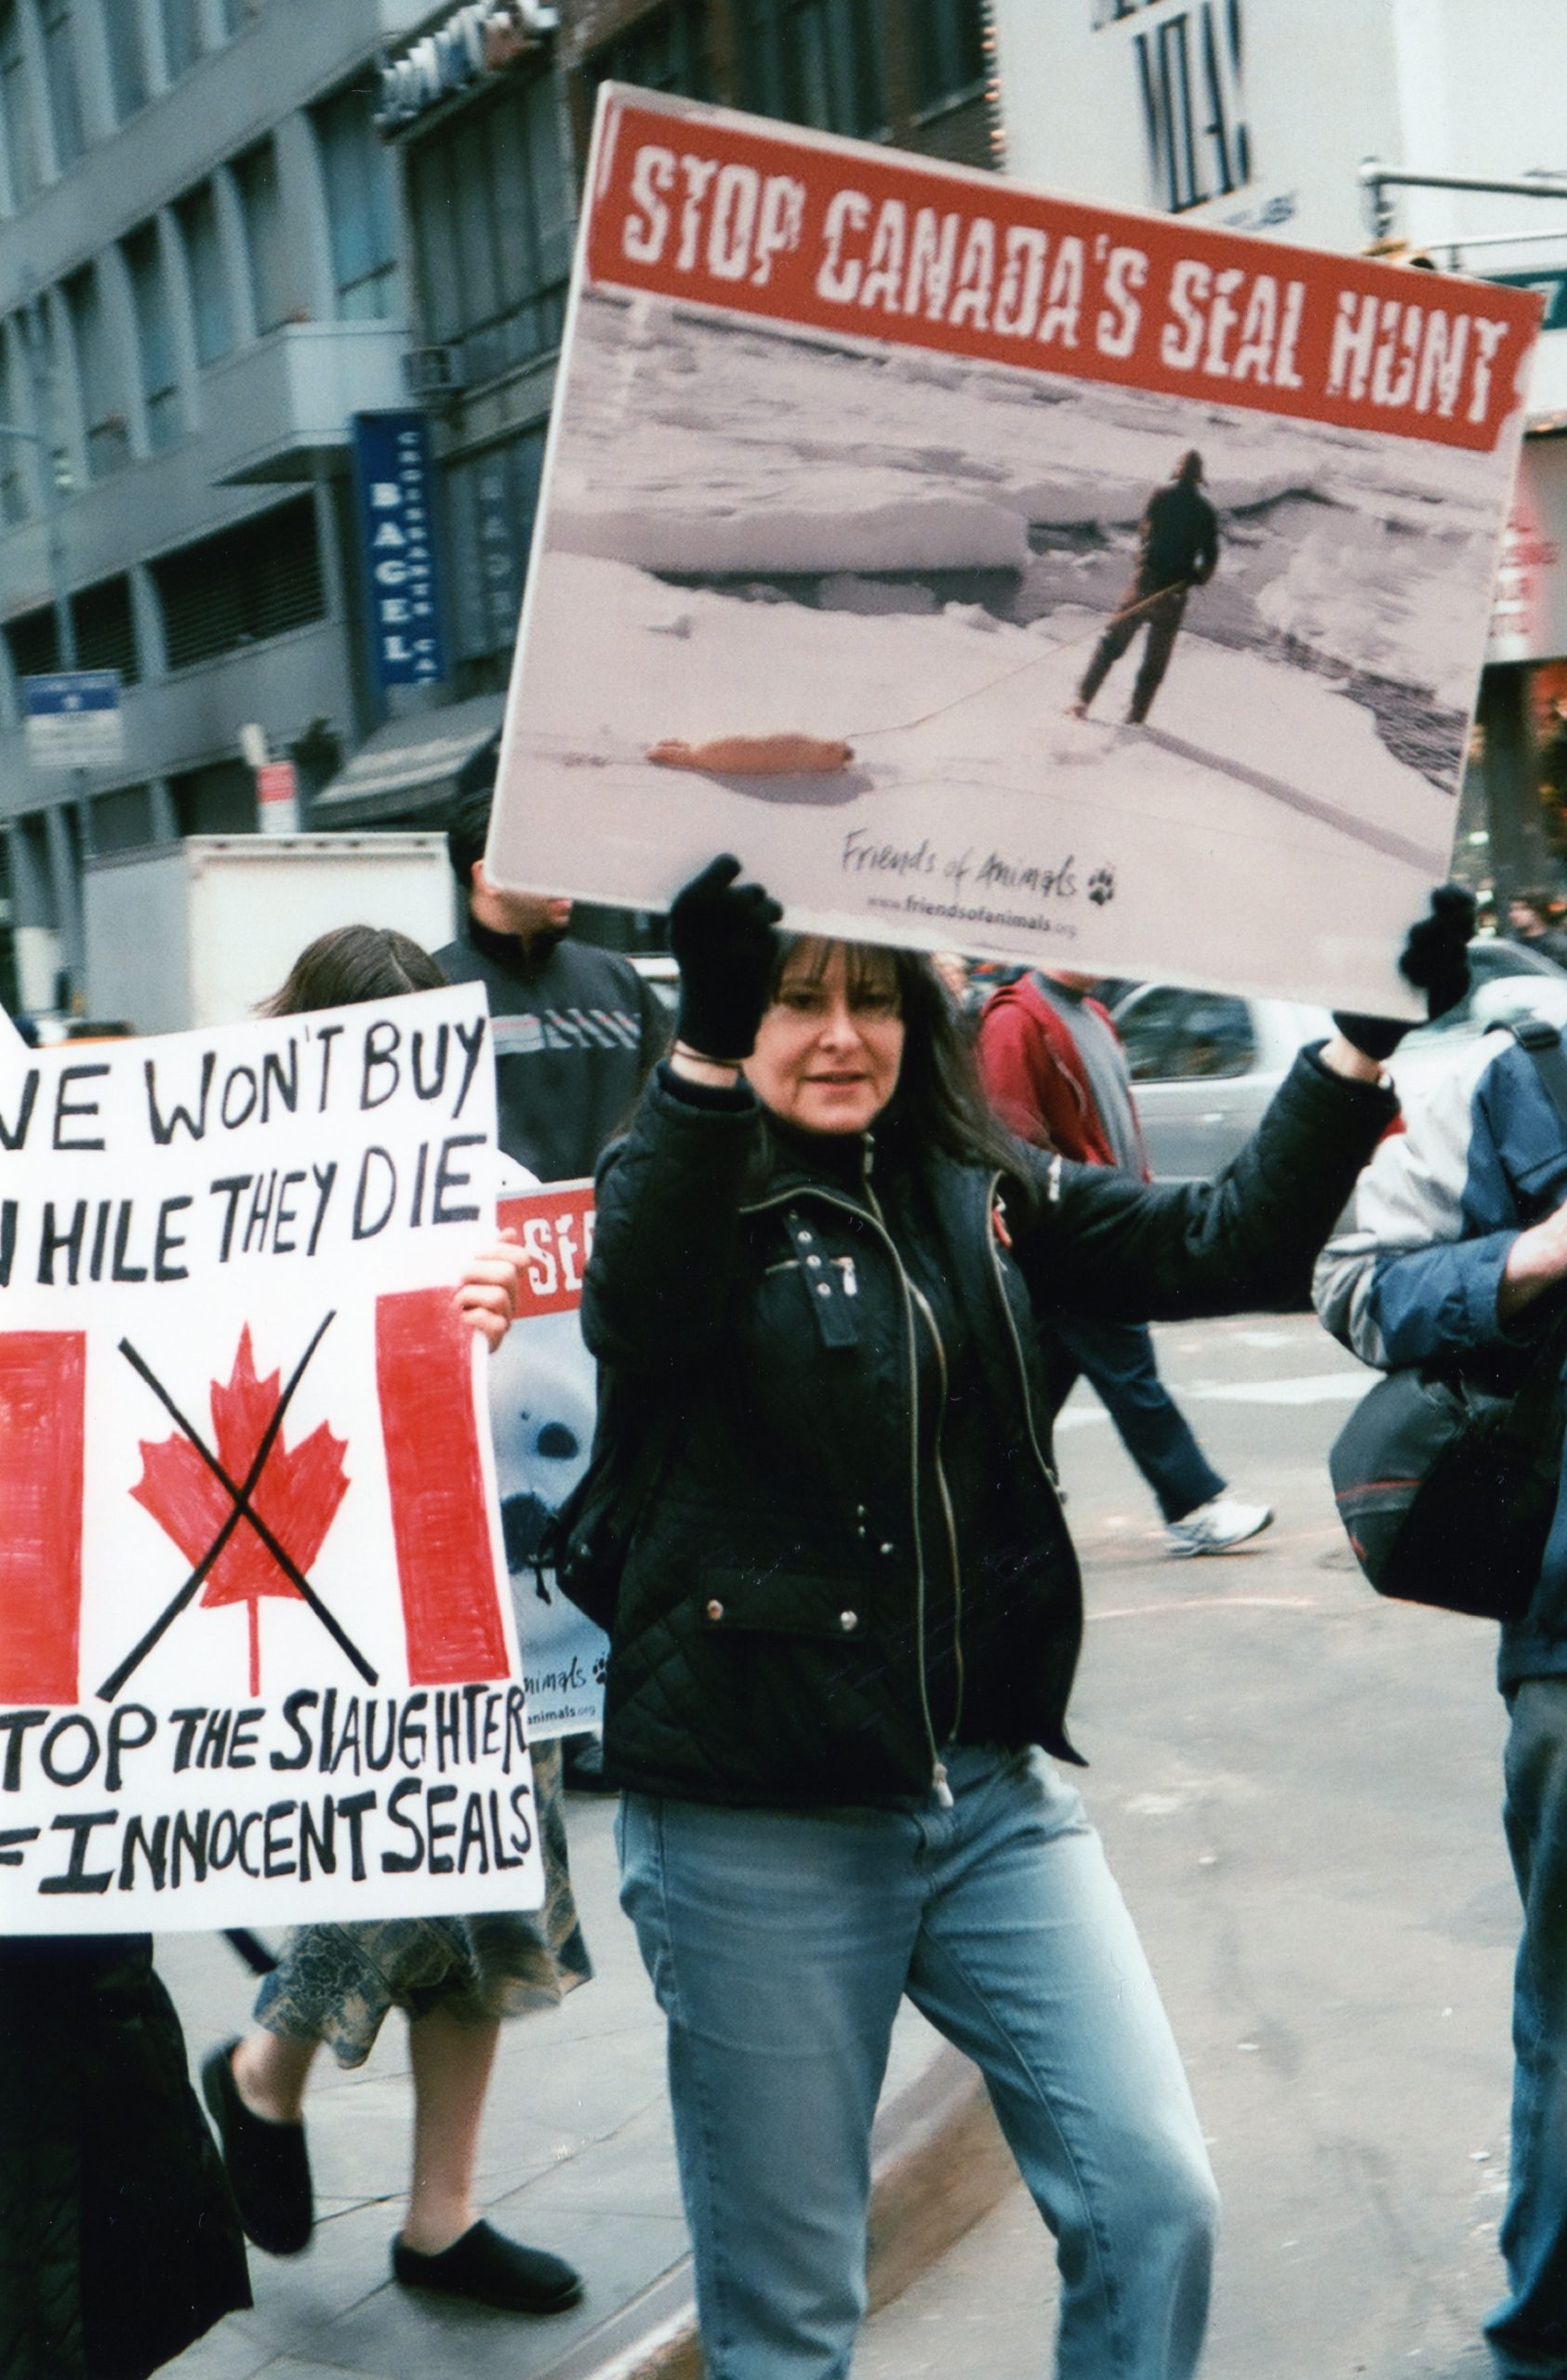 People march with signs protesting Canada's seal hunt.